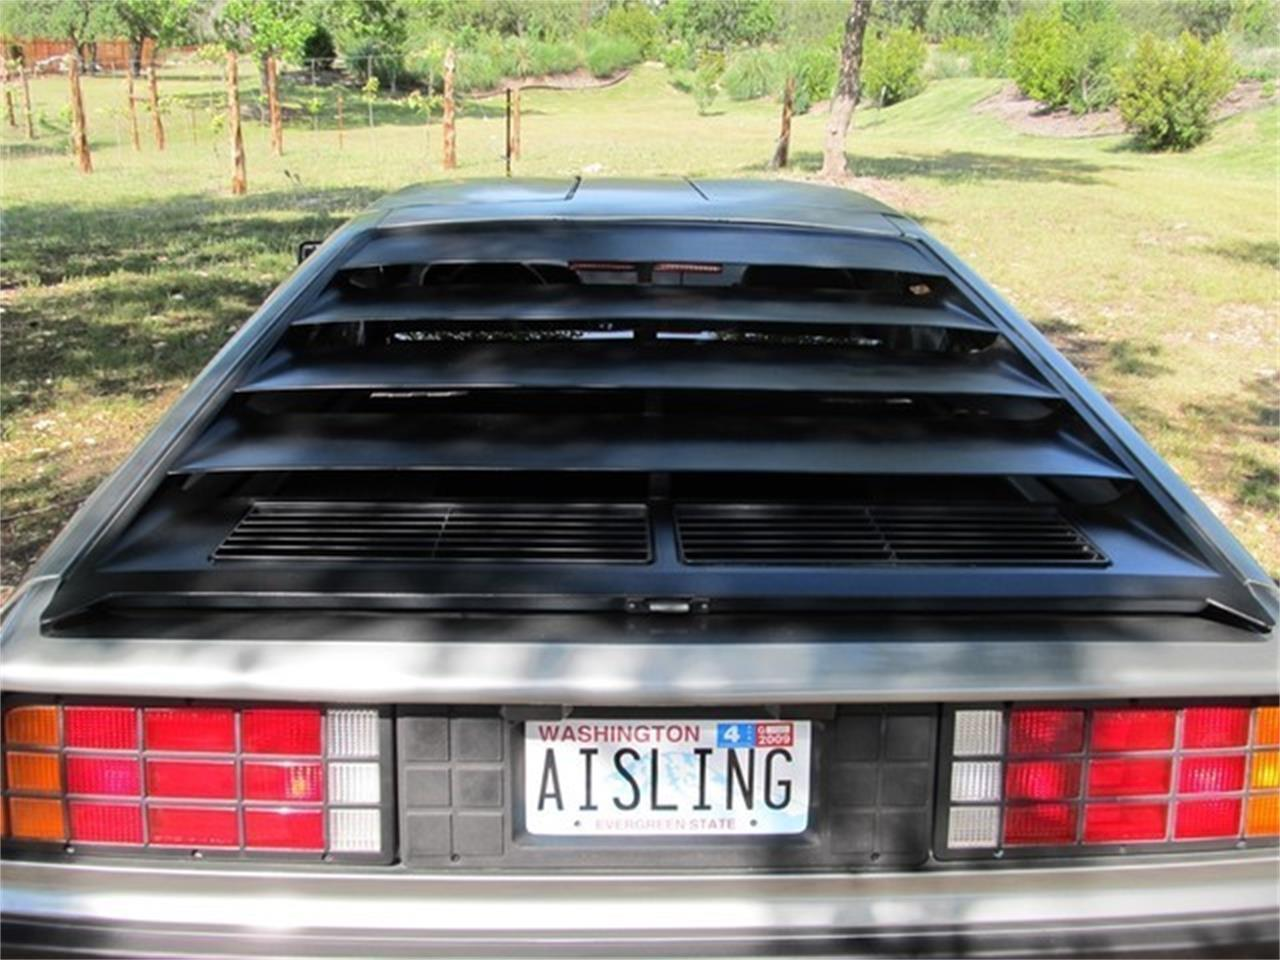 Large Picture of 1981 DMC-12 located in Texas - $28,500.00 Offered by TX Collector Classic Cars - ET8B